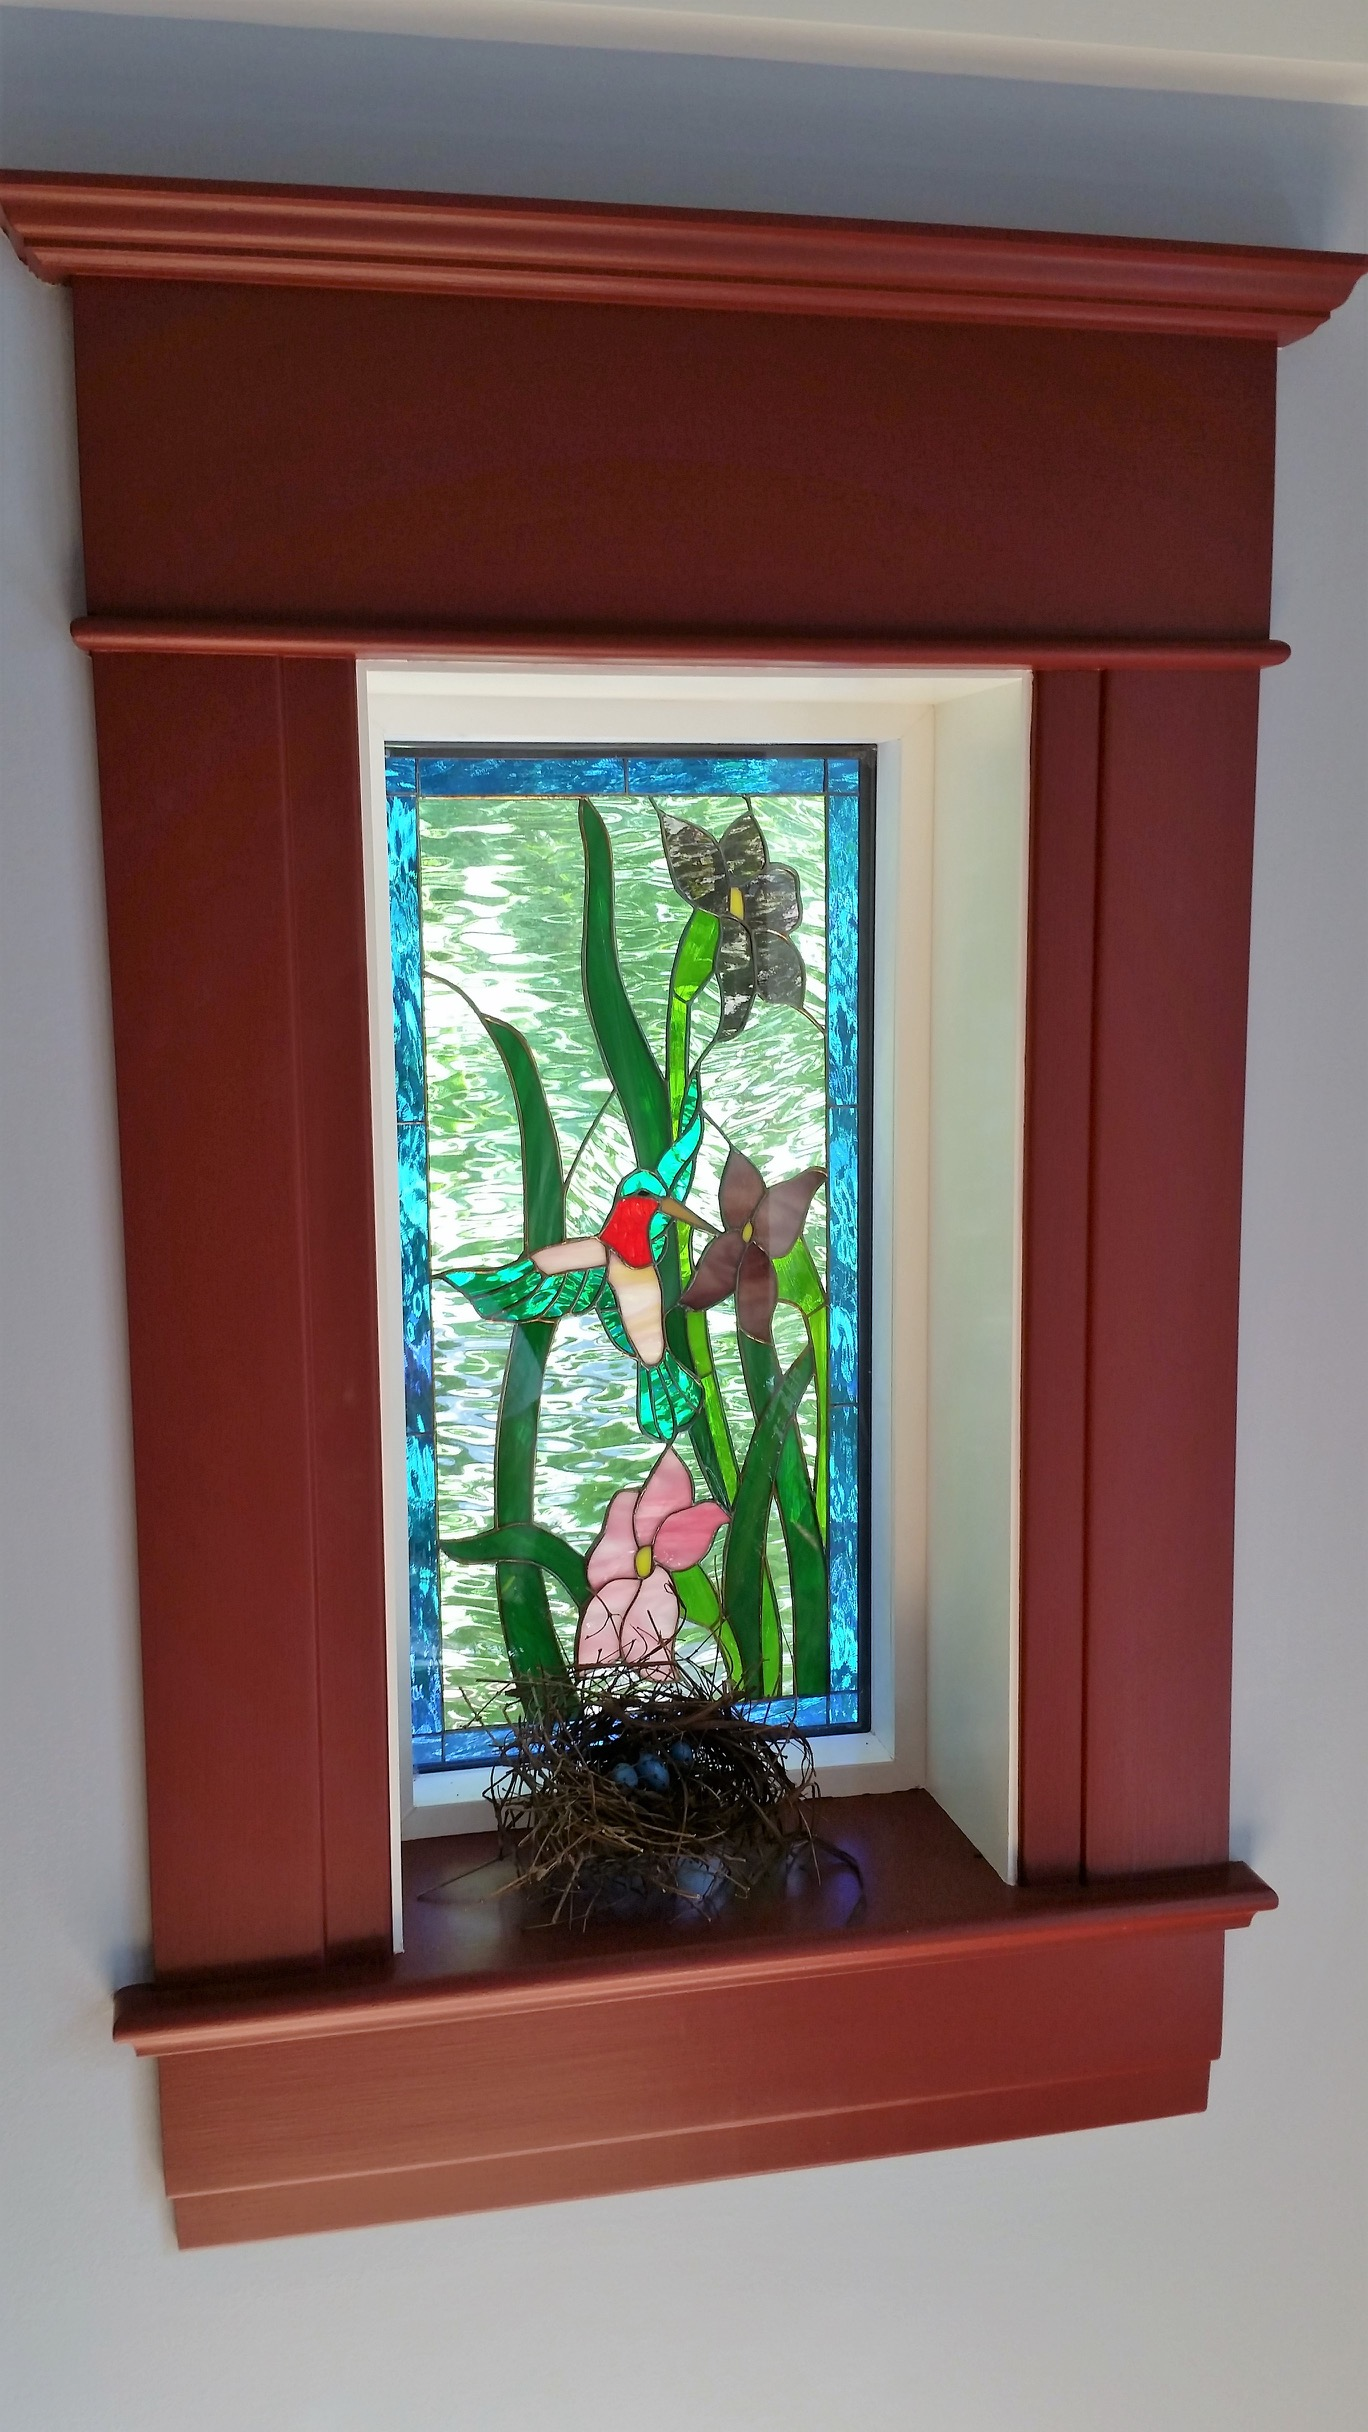 Stainedglasswindows Com Custom Stained Glass Beveled